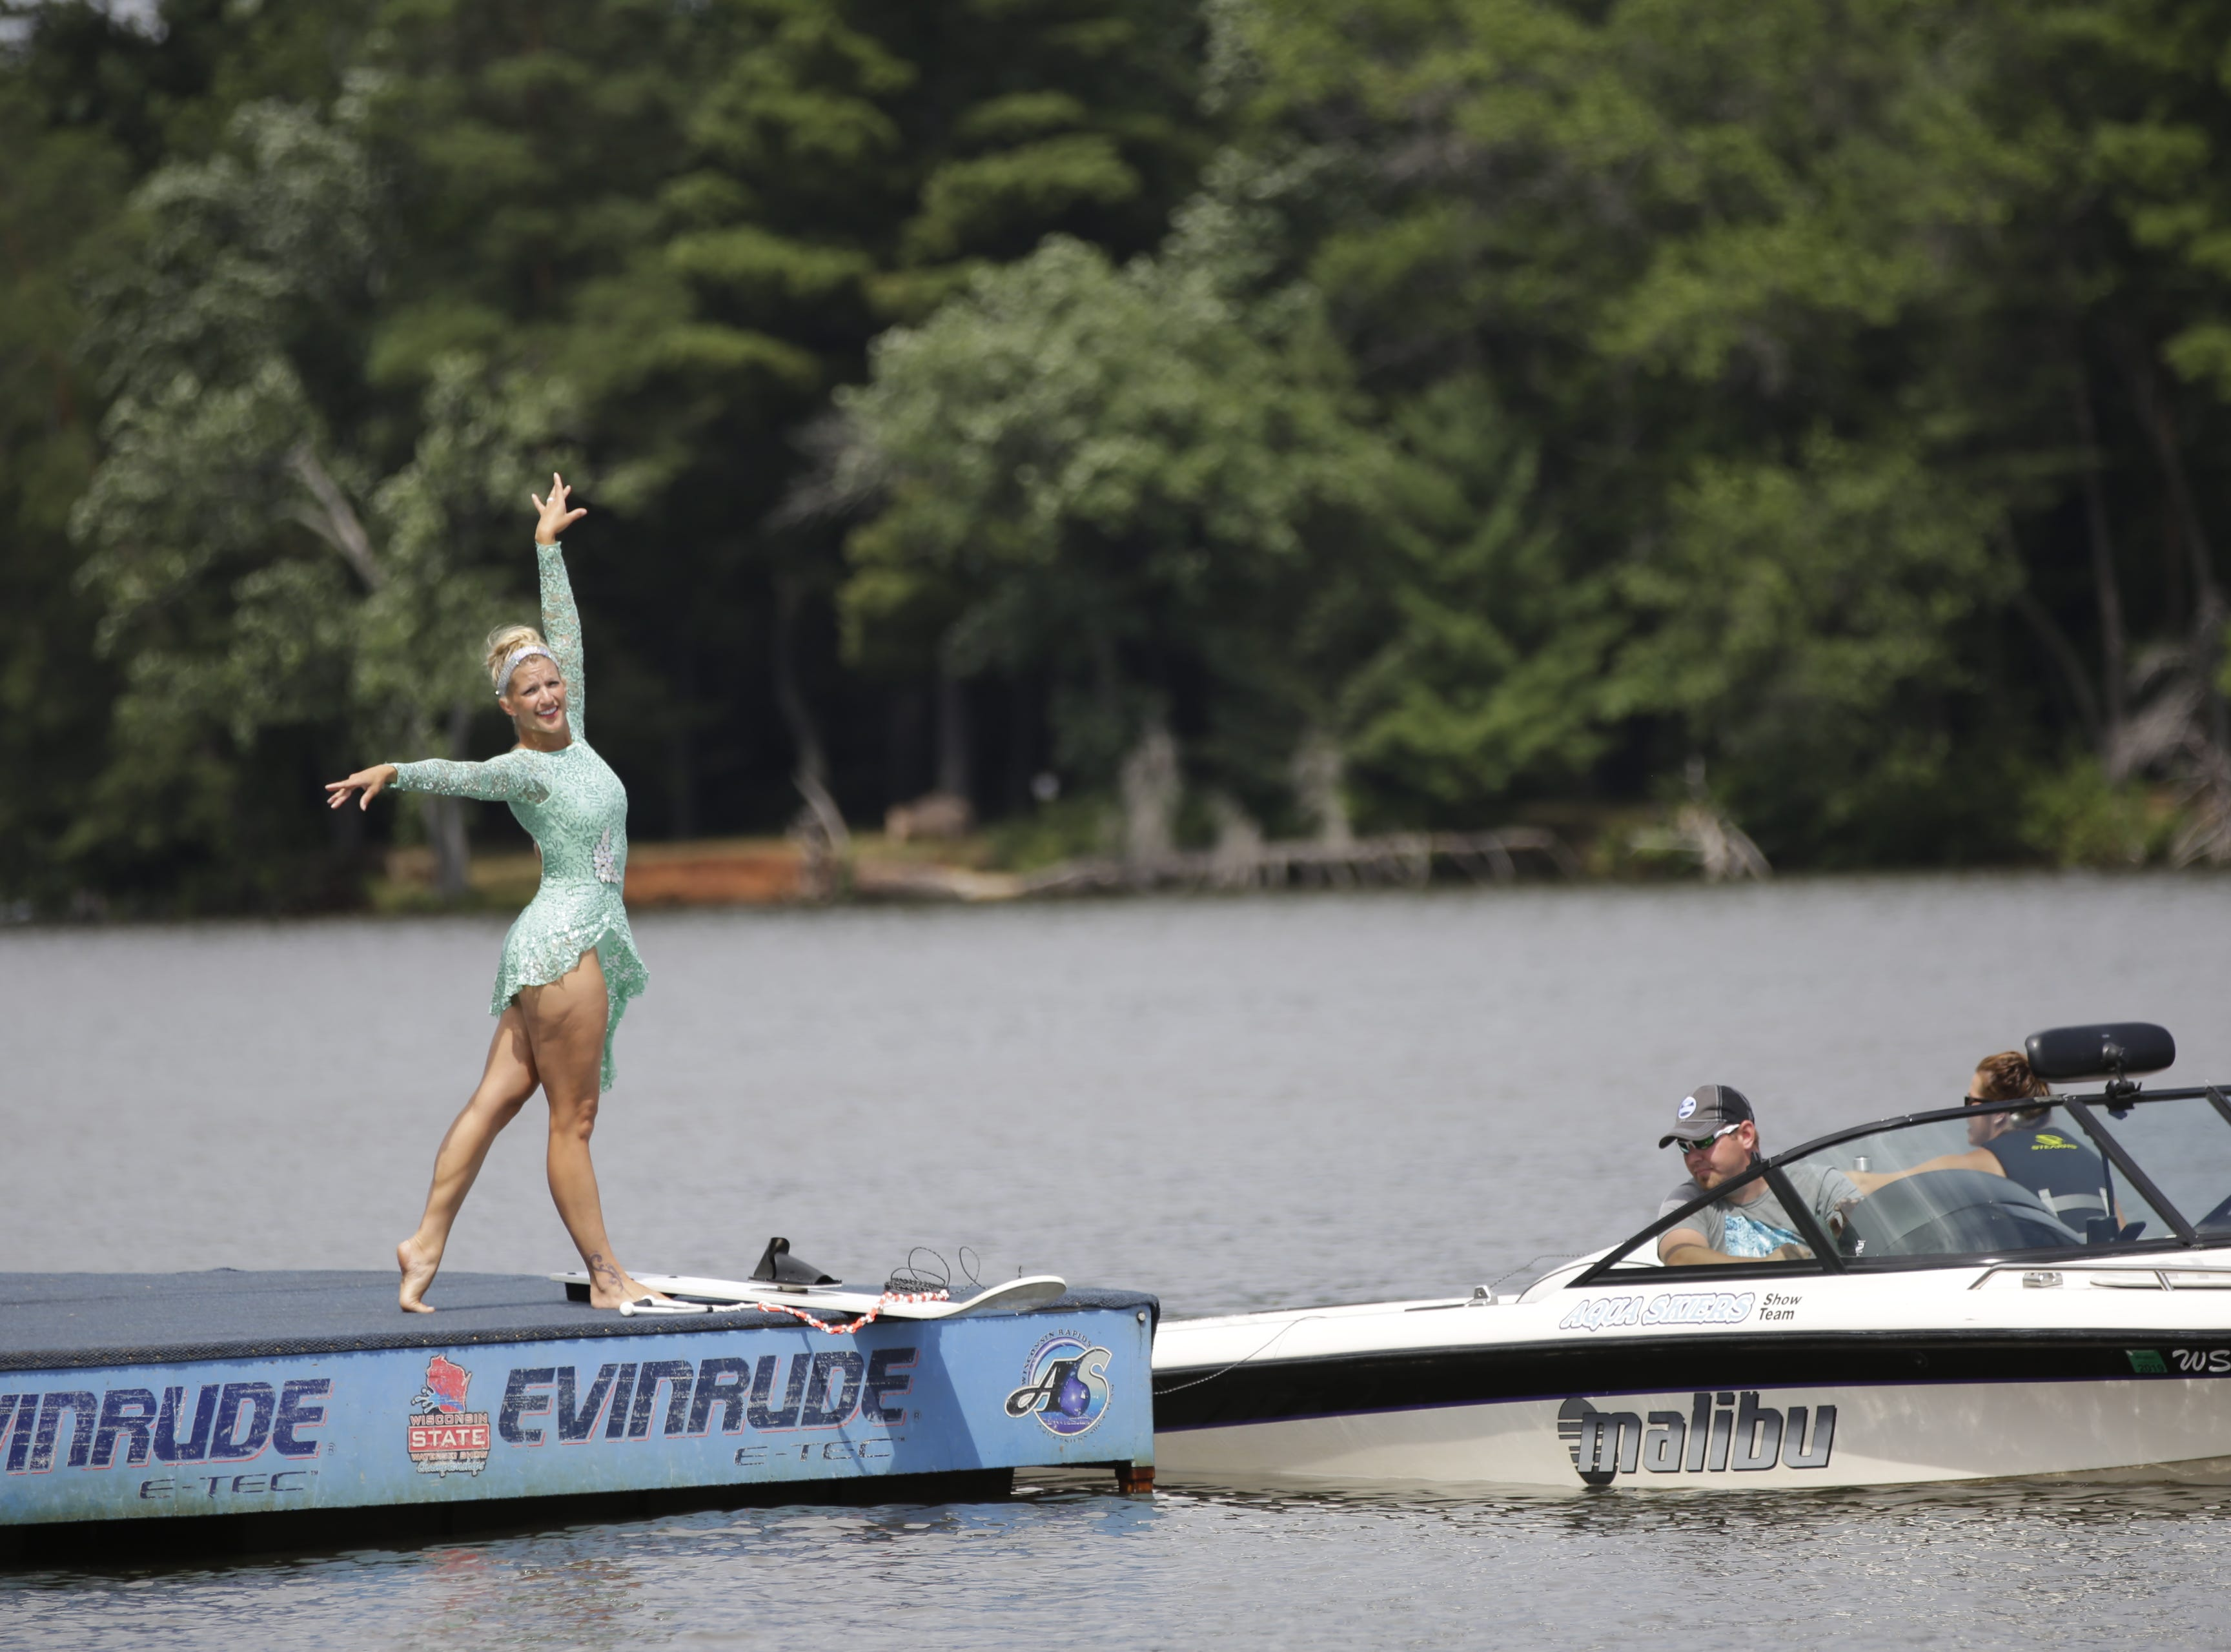 Pam Heineck competes in the swivel category during the Wisconsin State Water Ski Show Championships on Lake Wazeecha in Kellner Thursday, July 19, 2018.